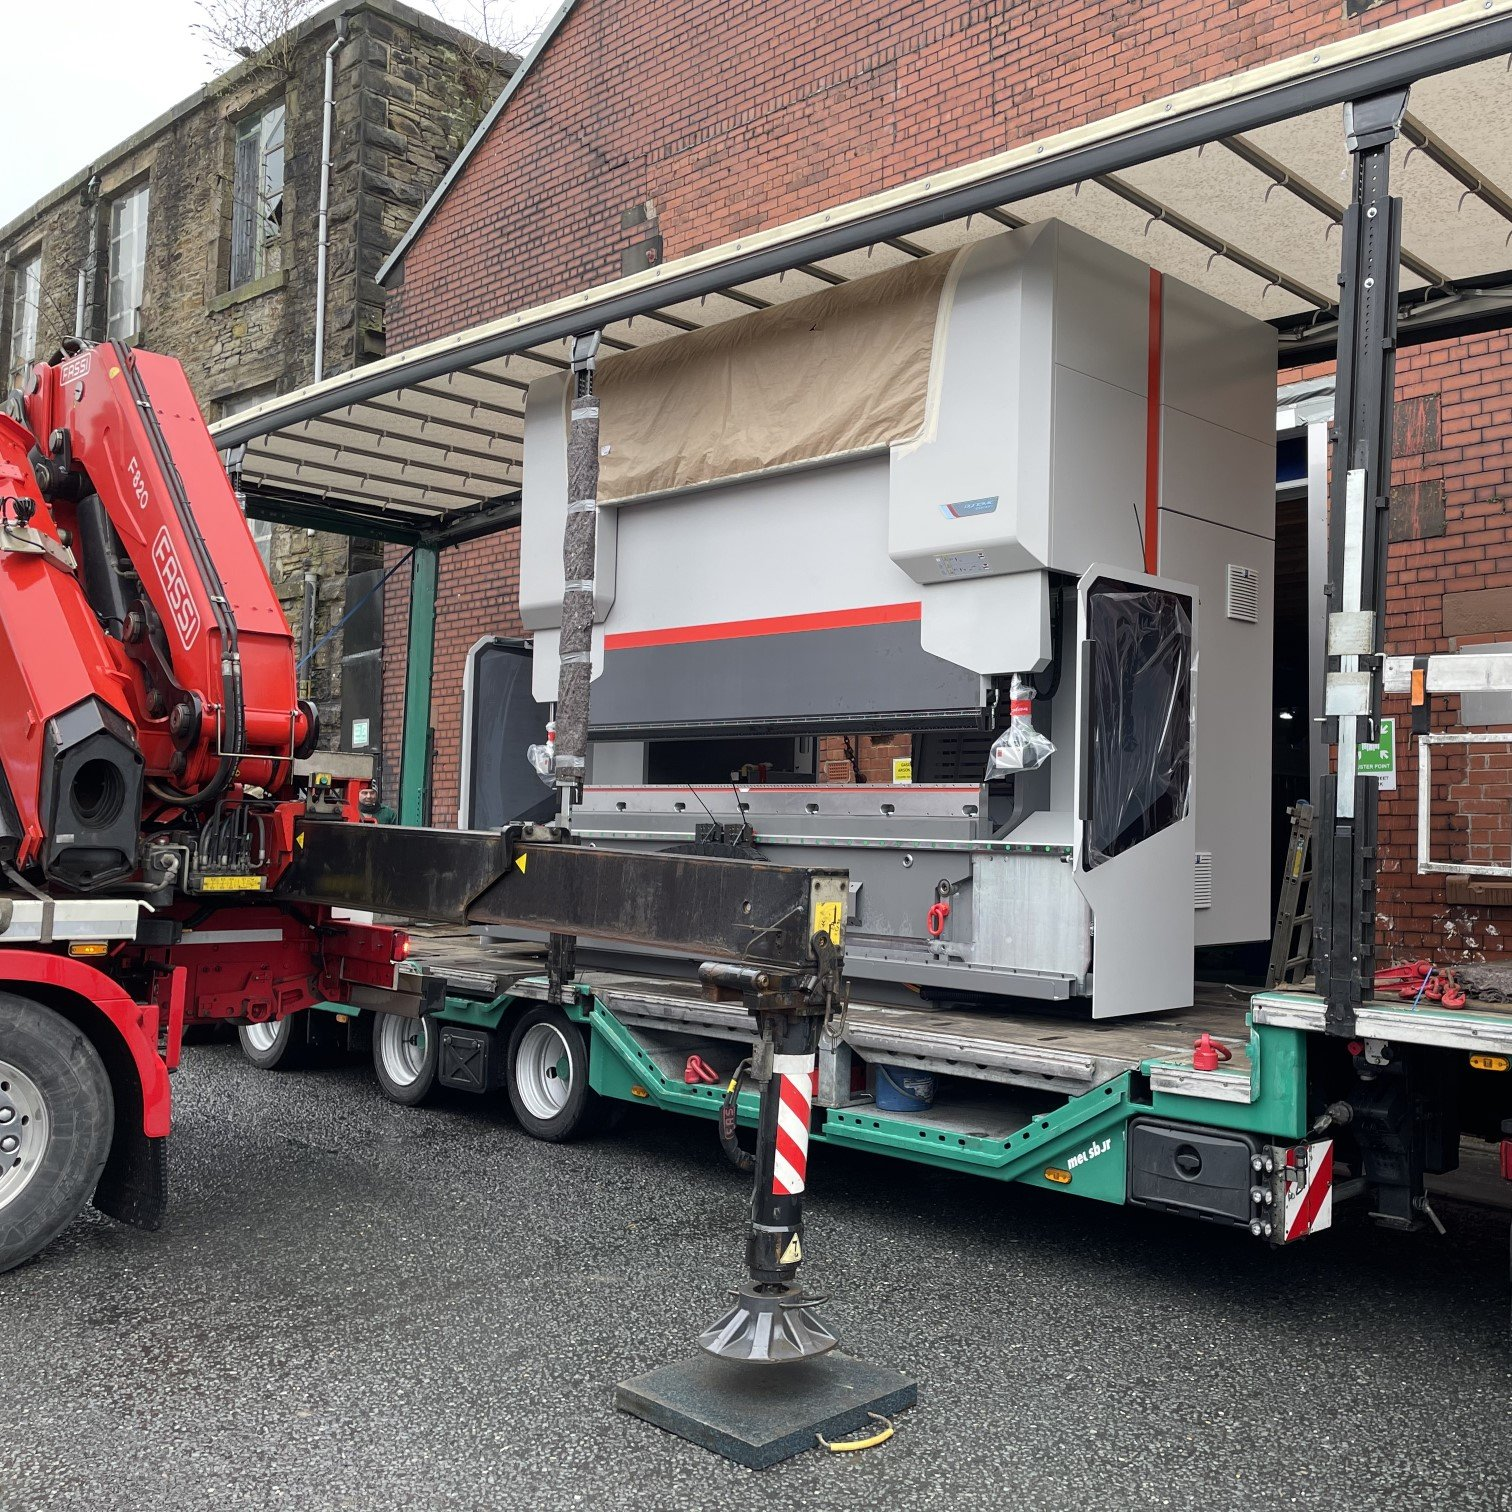 New press brake is offloaded from transport